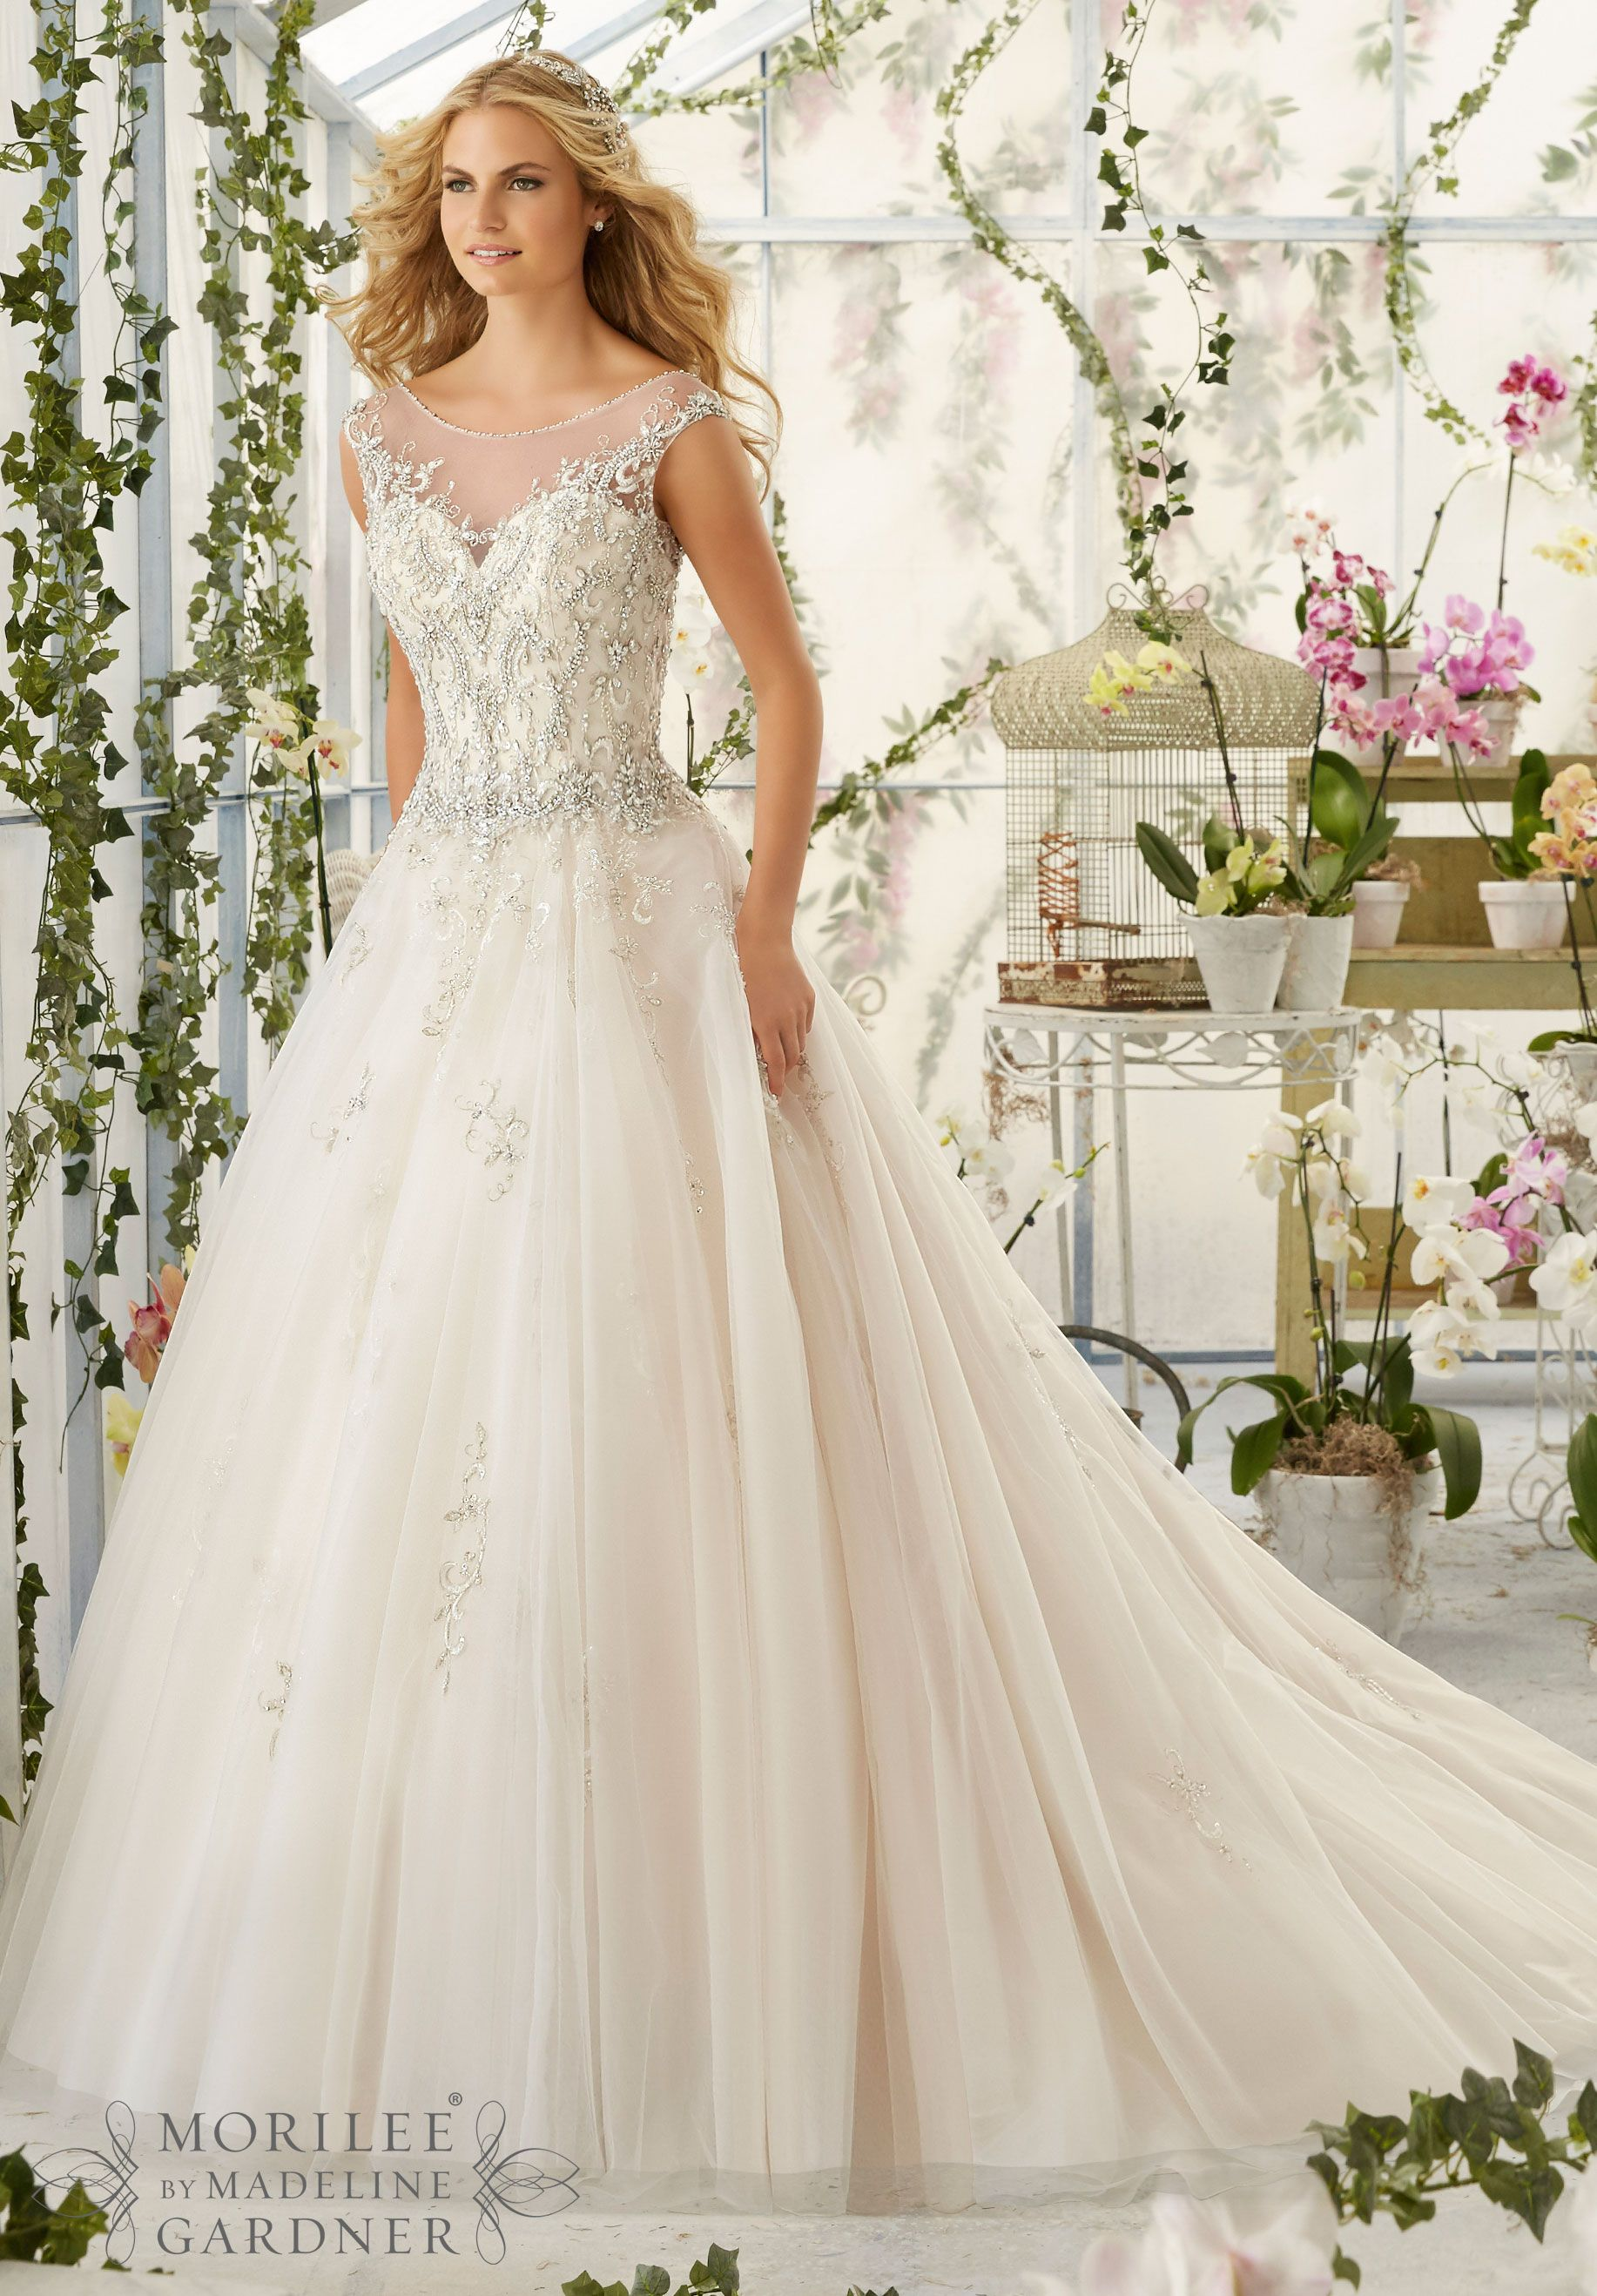 Wedding dresses and wedding gowns by morilee featuring intricate